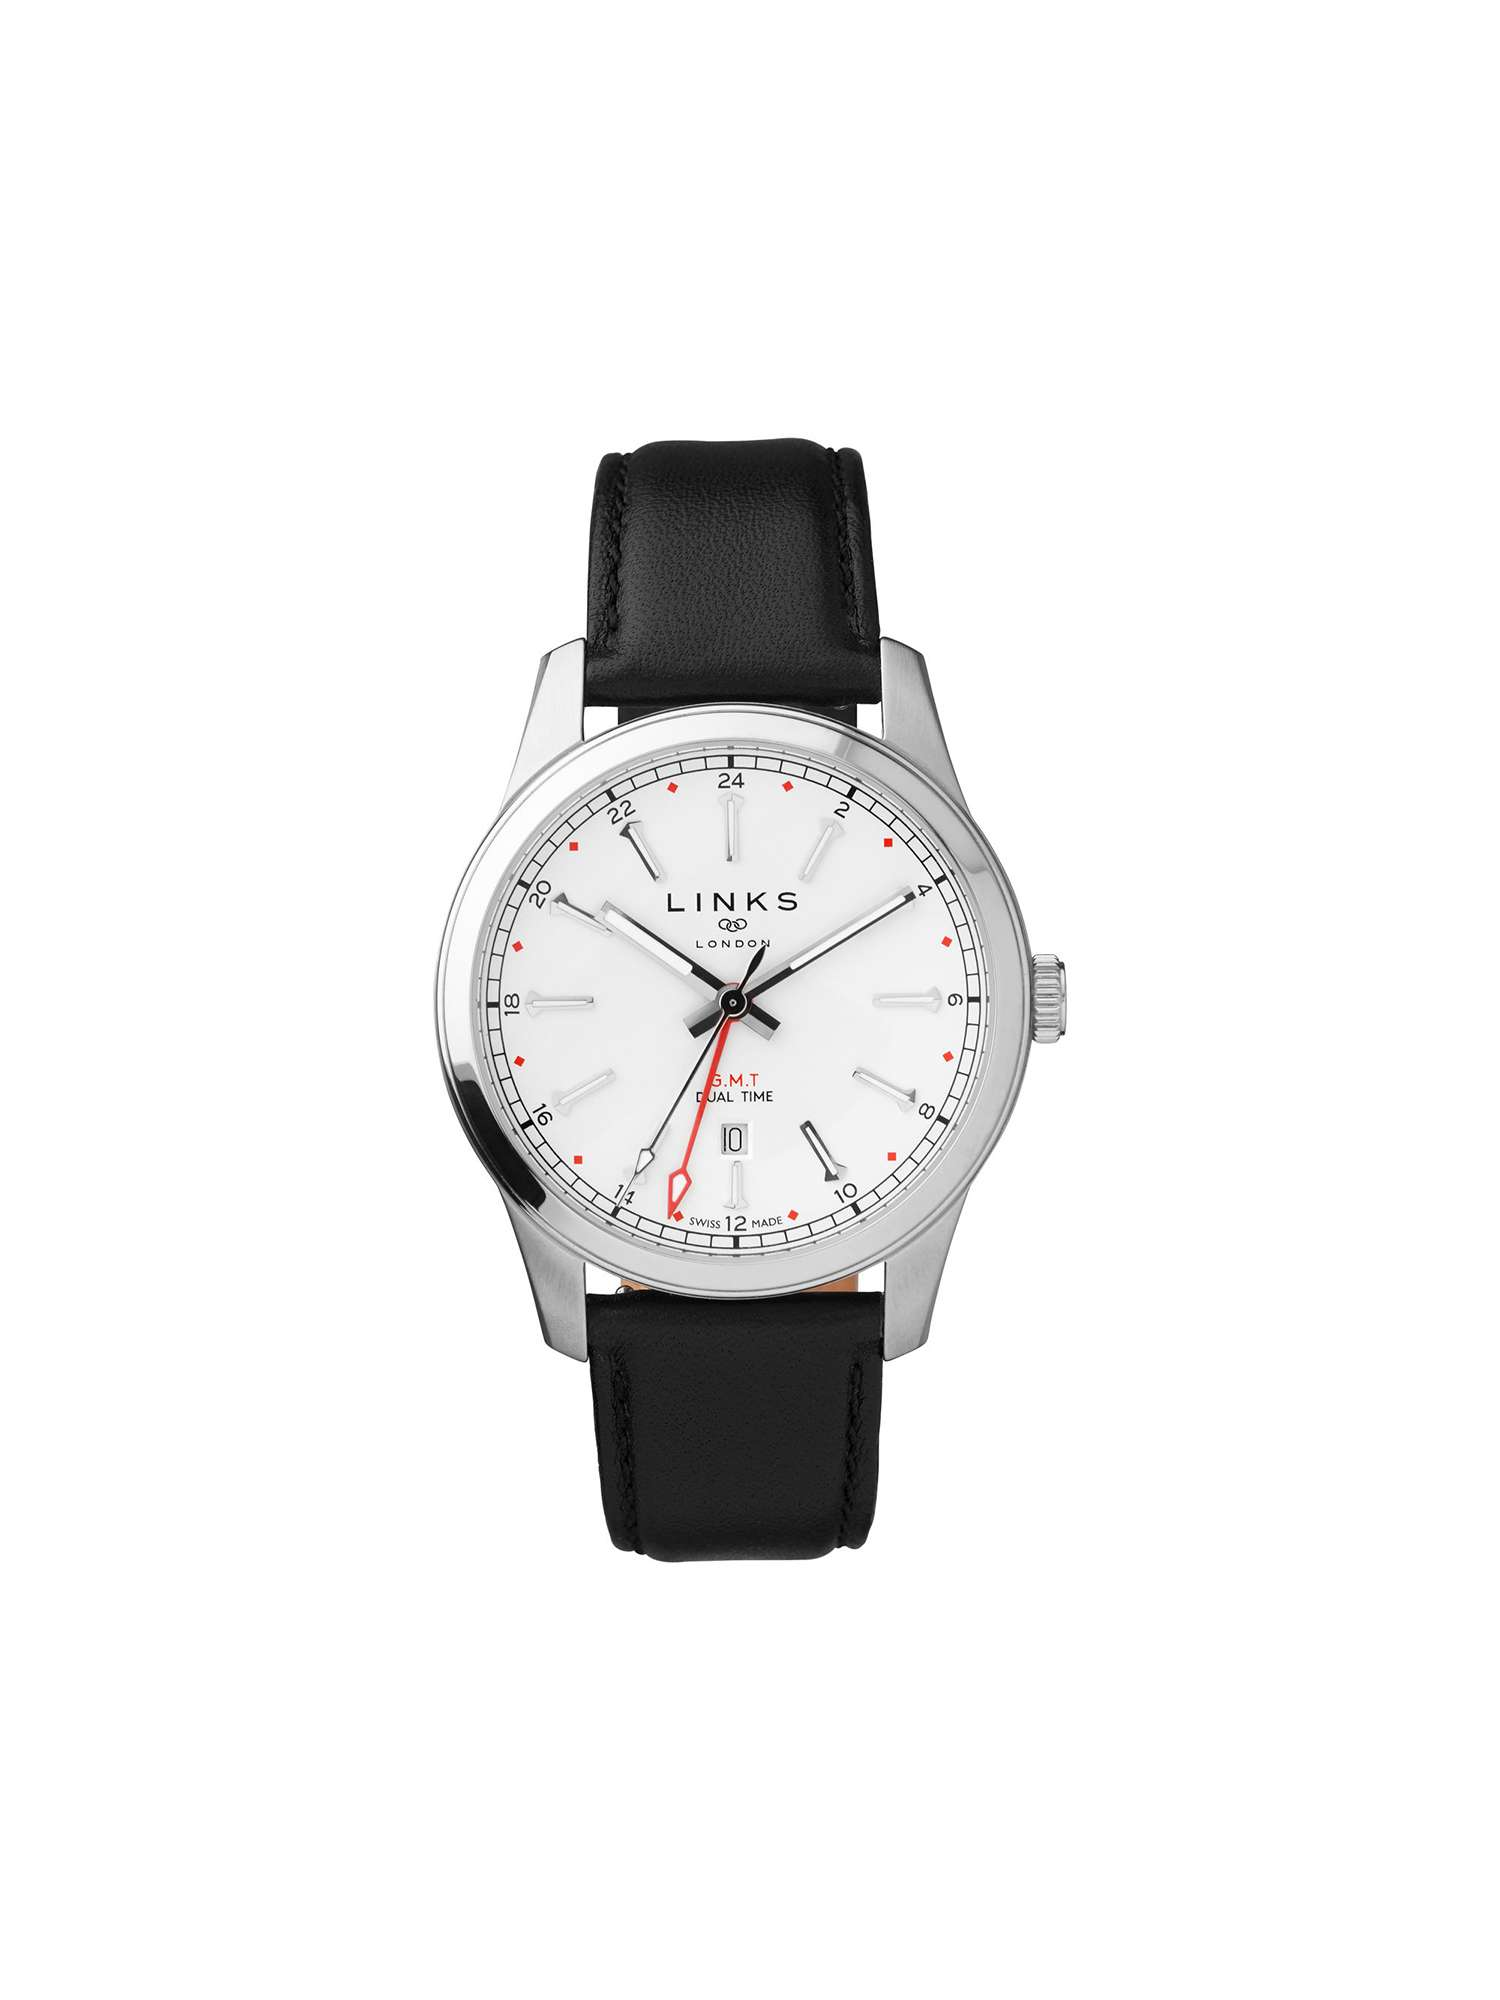 Links of London Greenwich Gmt Mens Black Leather Watch ...